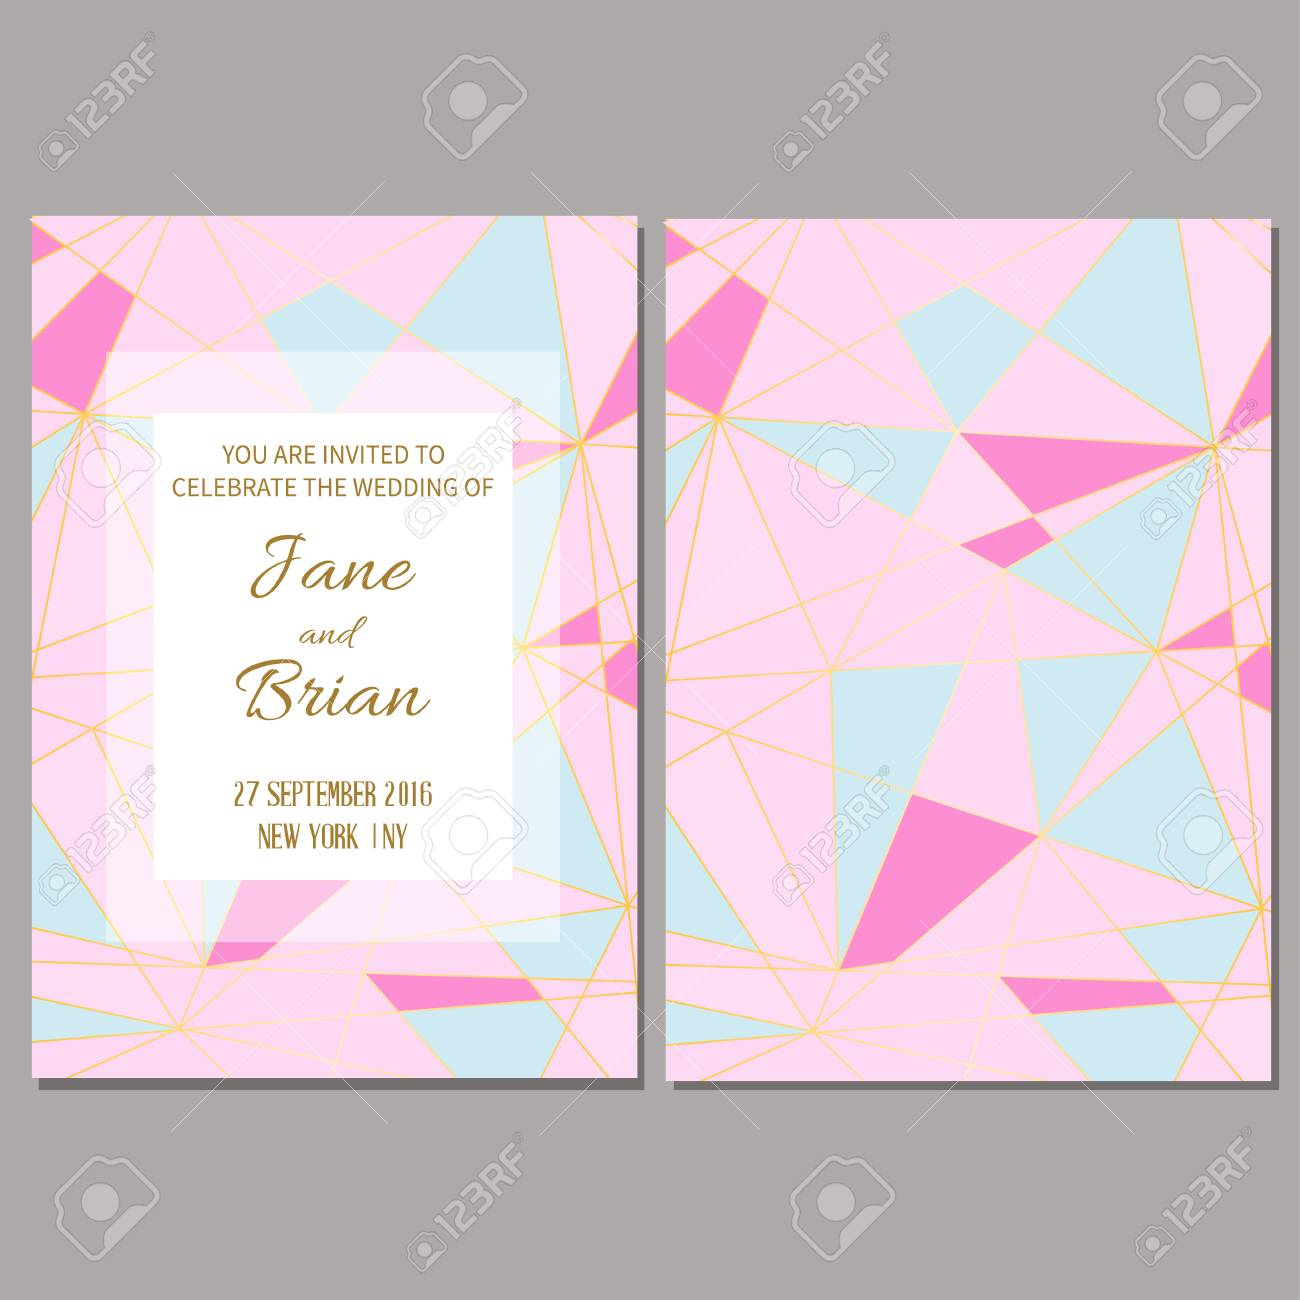 Save the date card wedding invitation template geometric polygonal wedding invitation template geometric polygonal trendy design vector illustration stopboris Choice Image